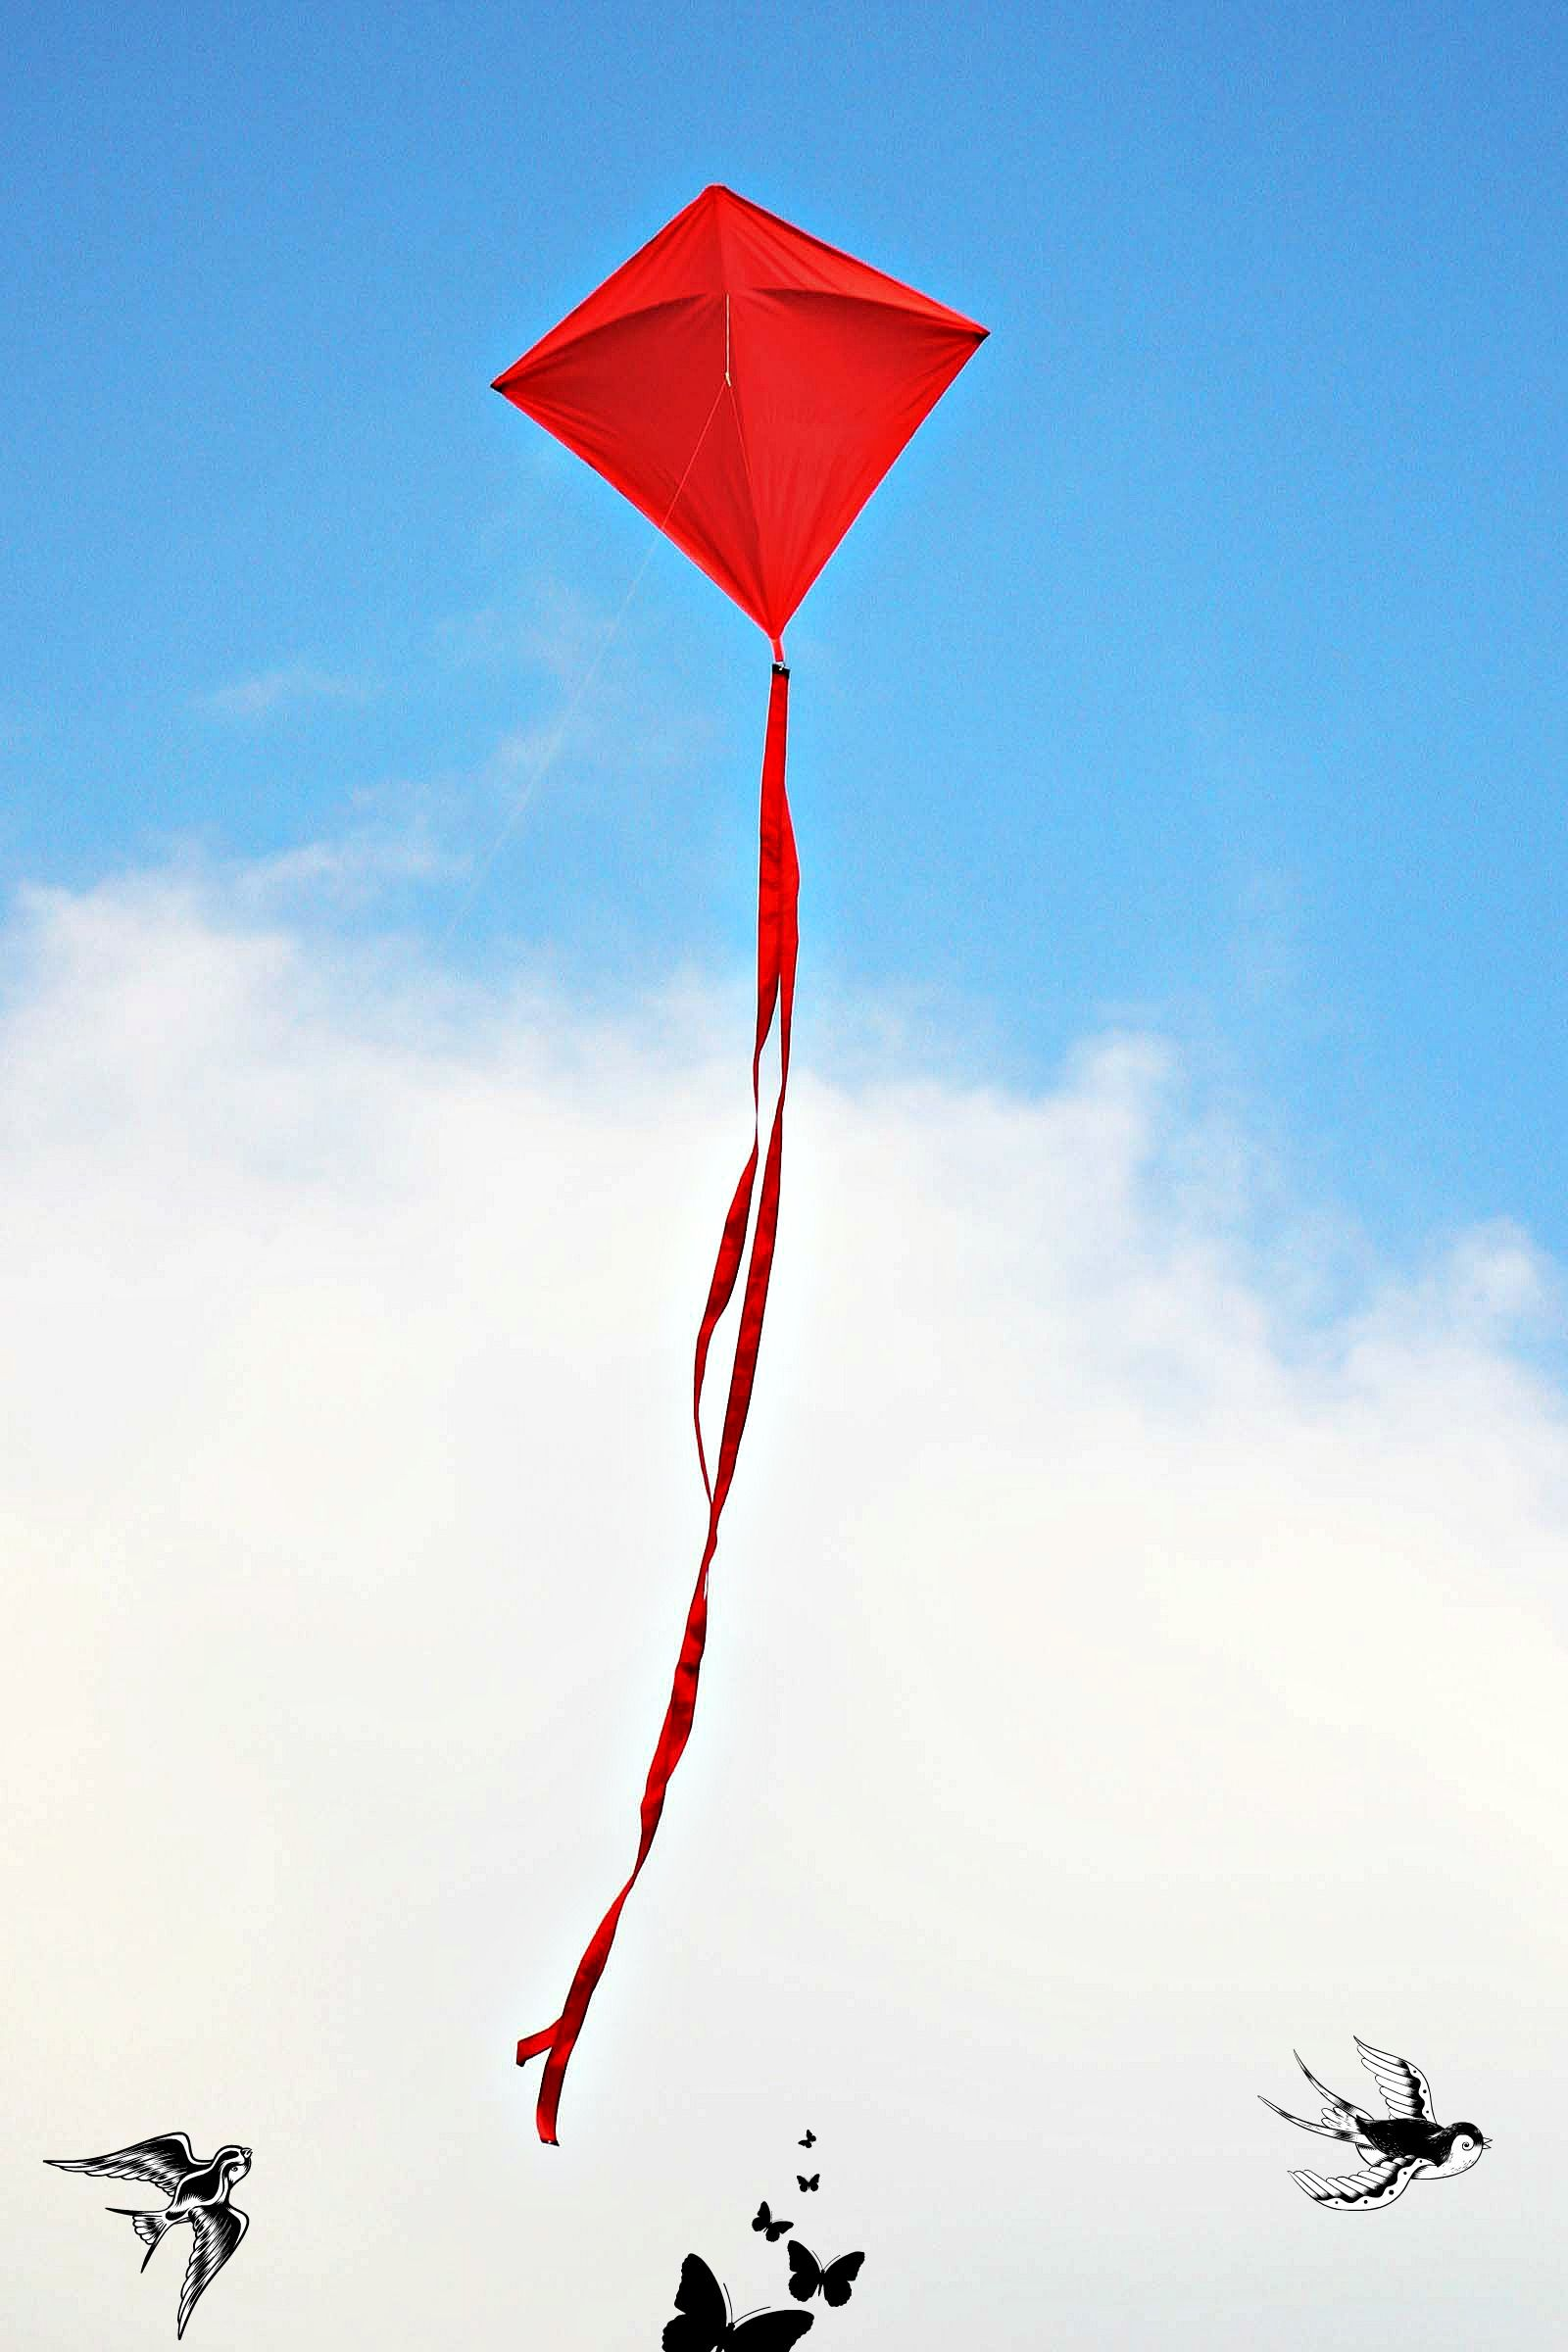 Still Single is Netflix your BFF? Go fly a kite, Kite